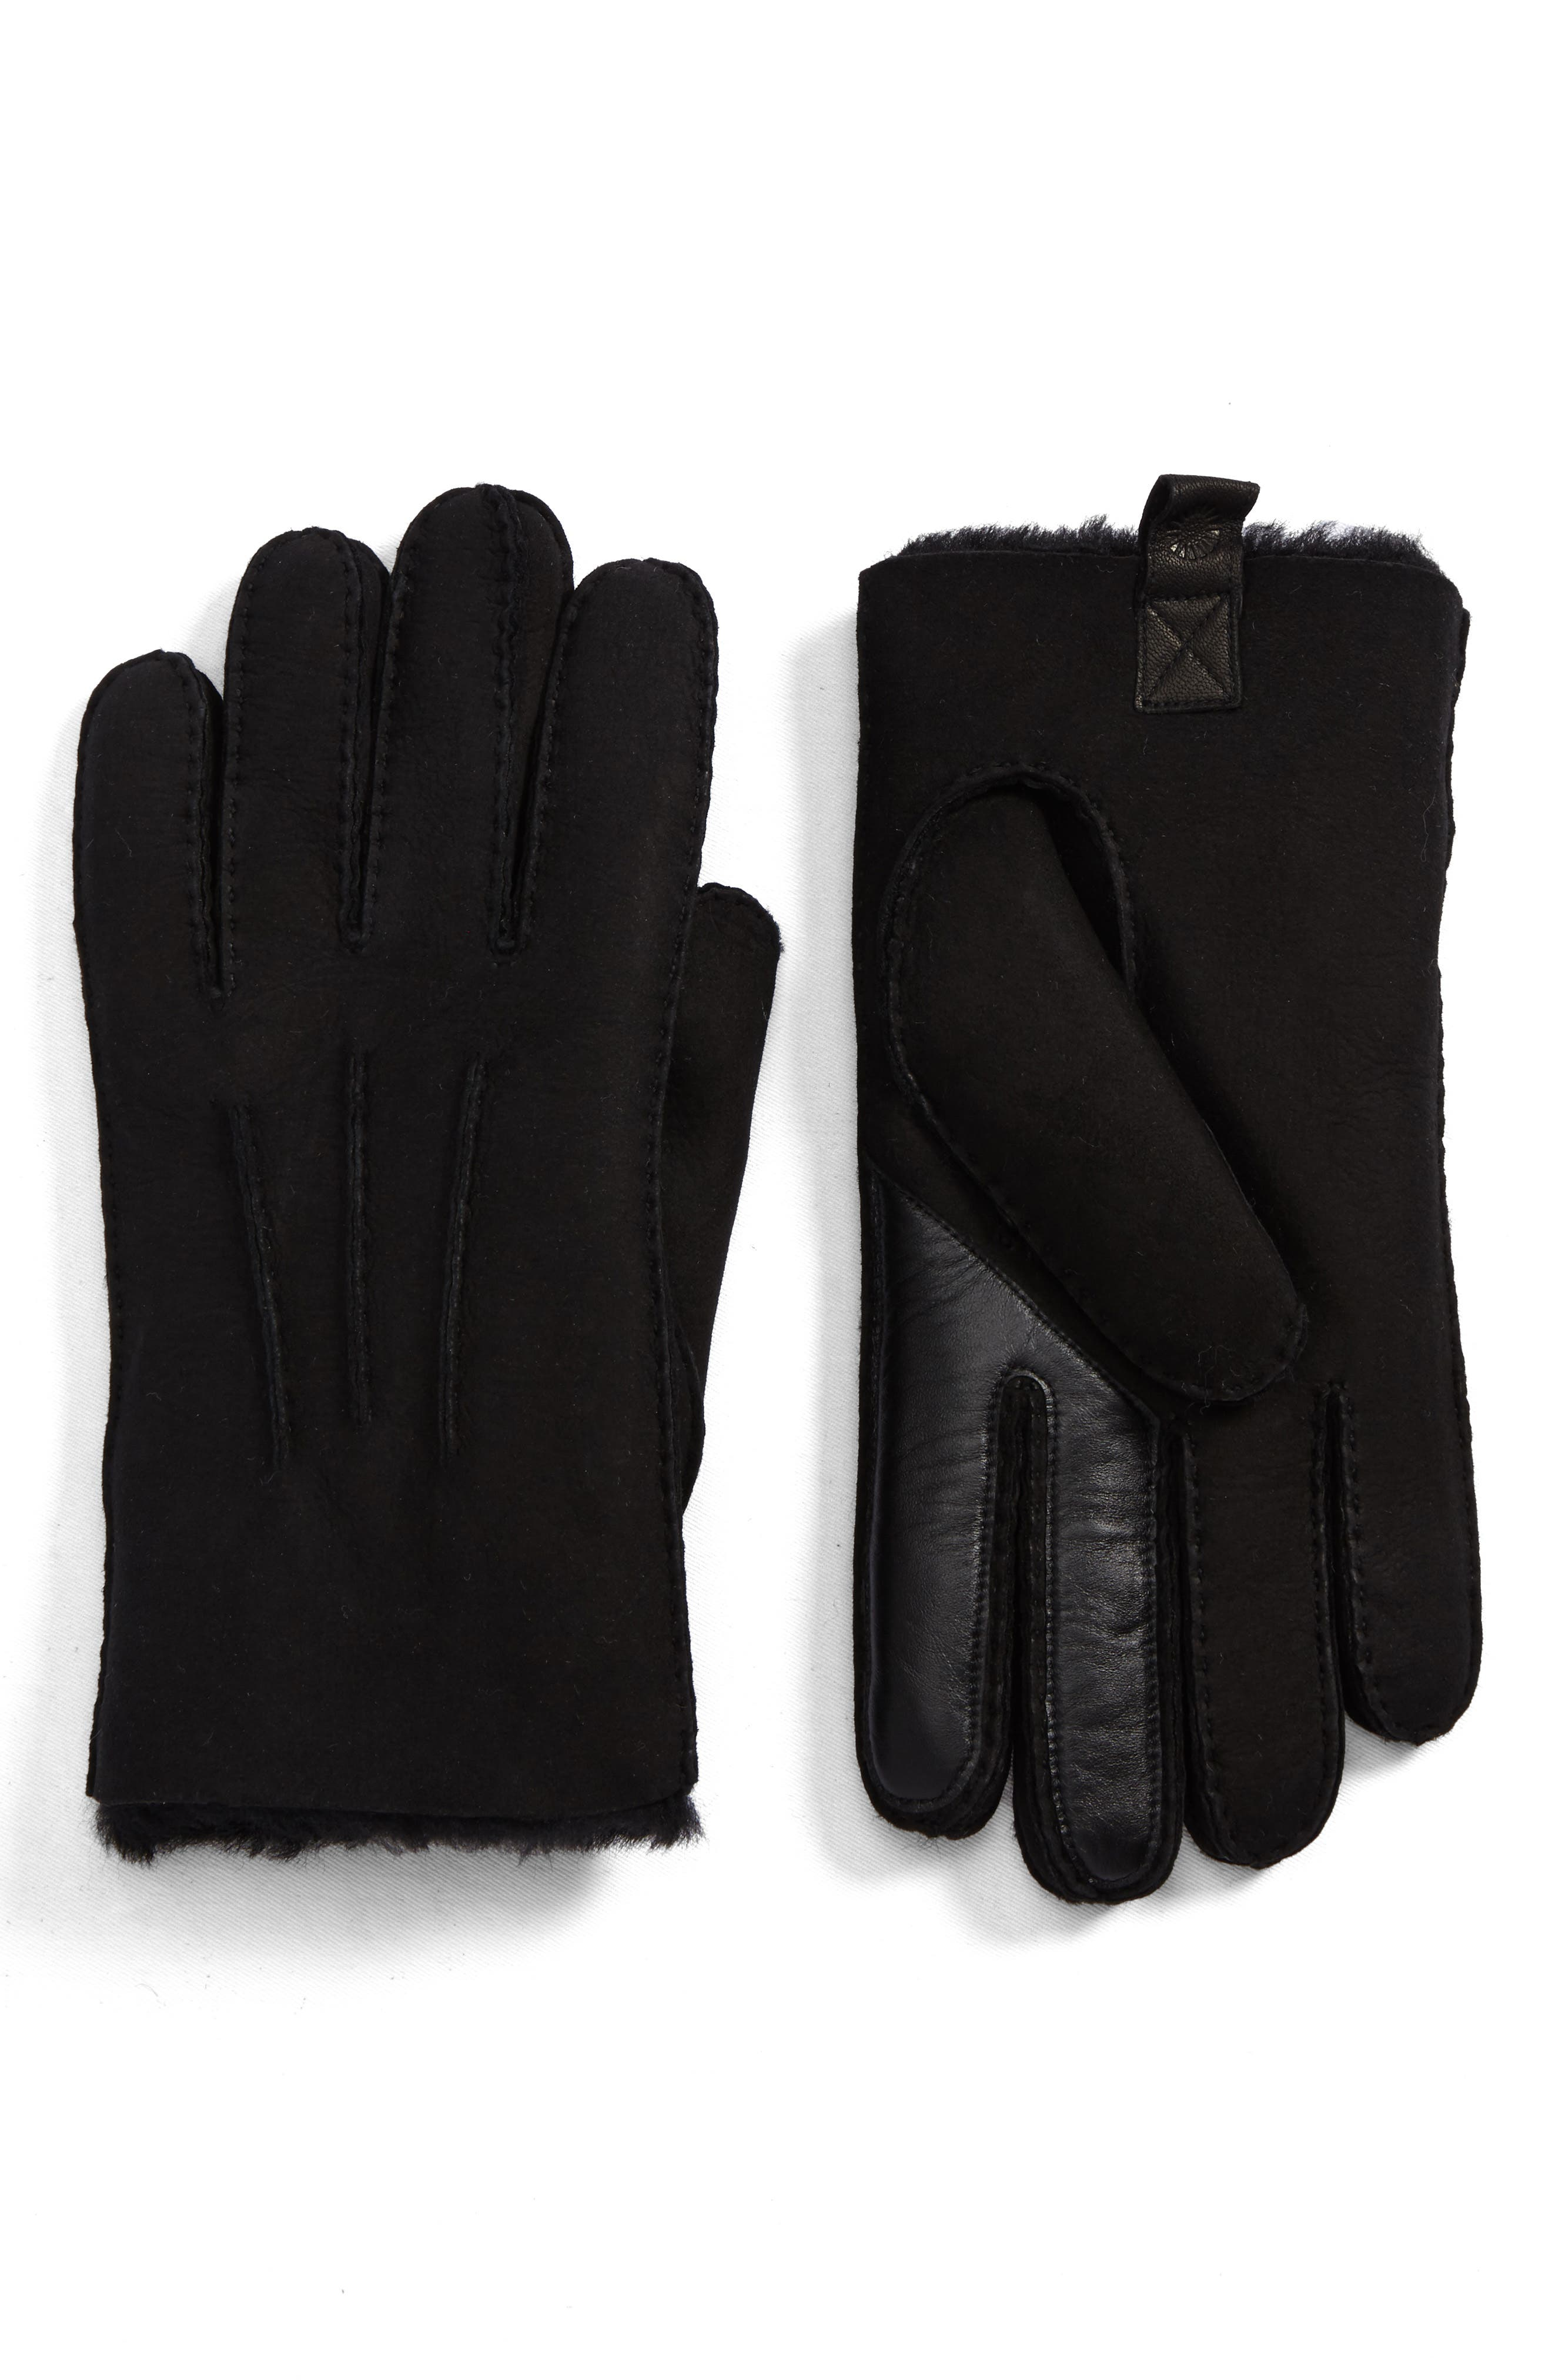 UGG Smart Sheepskin Shearling Leather Gloves,                             Main thumbnail 1, color,                             001